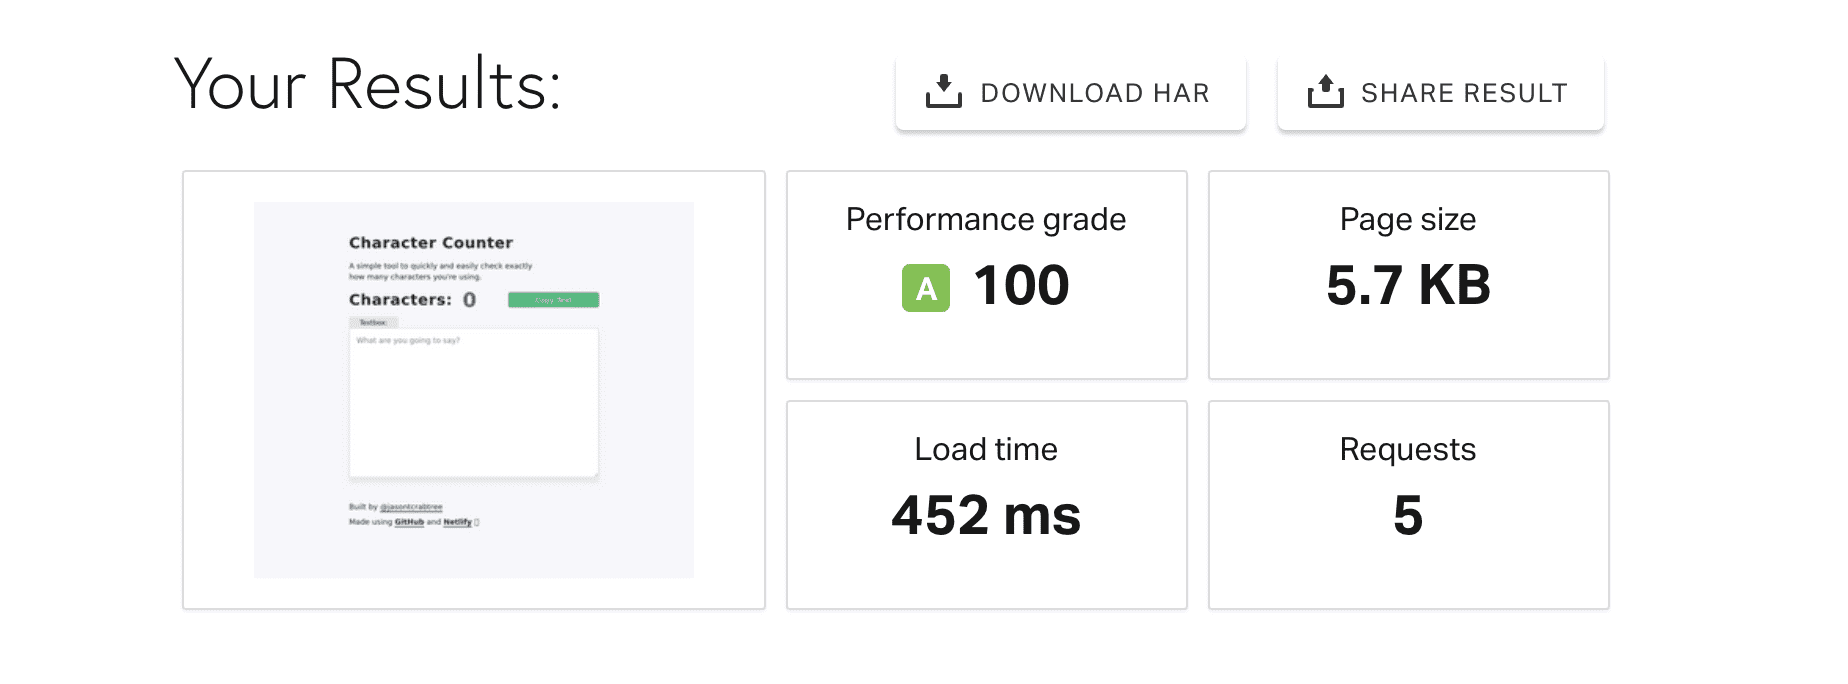 Pingdom Website Speed Test: Load time 452 ms